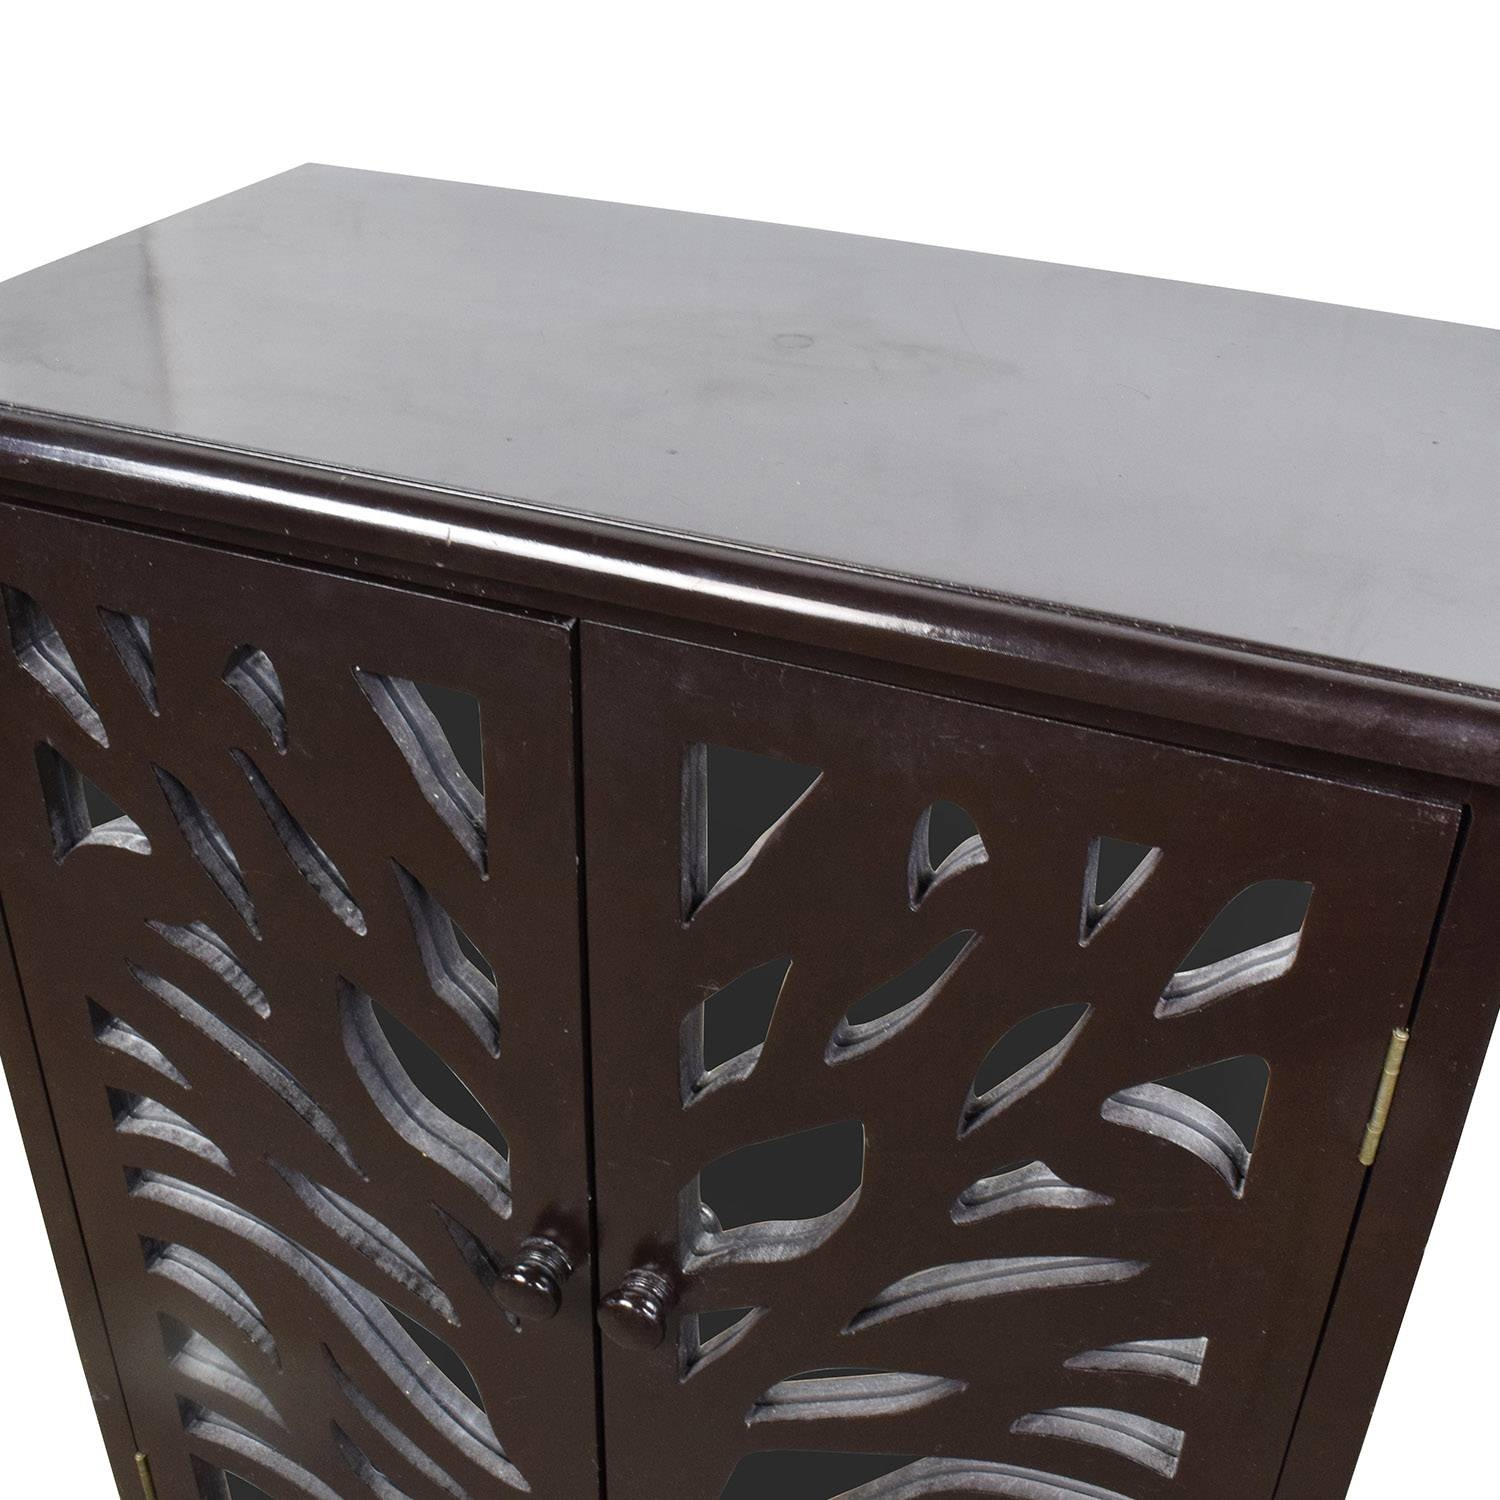 82% Off - Small Black Wood And Mirrored Chest / Storage with regard to Small Black Sideboards (Image 2 of 30)